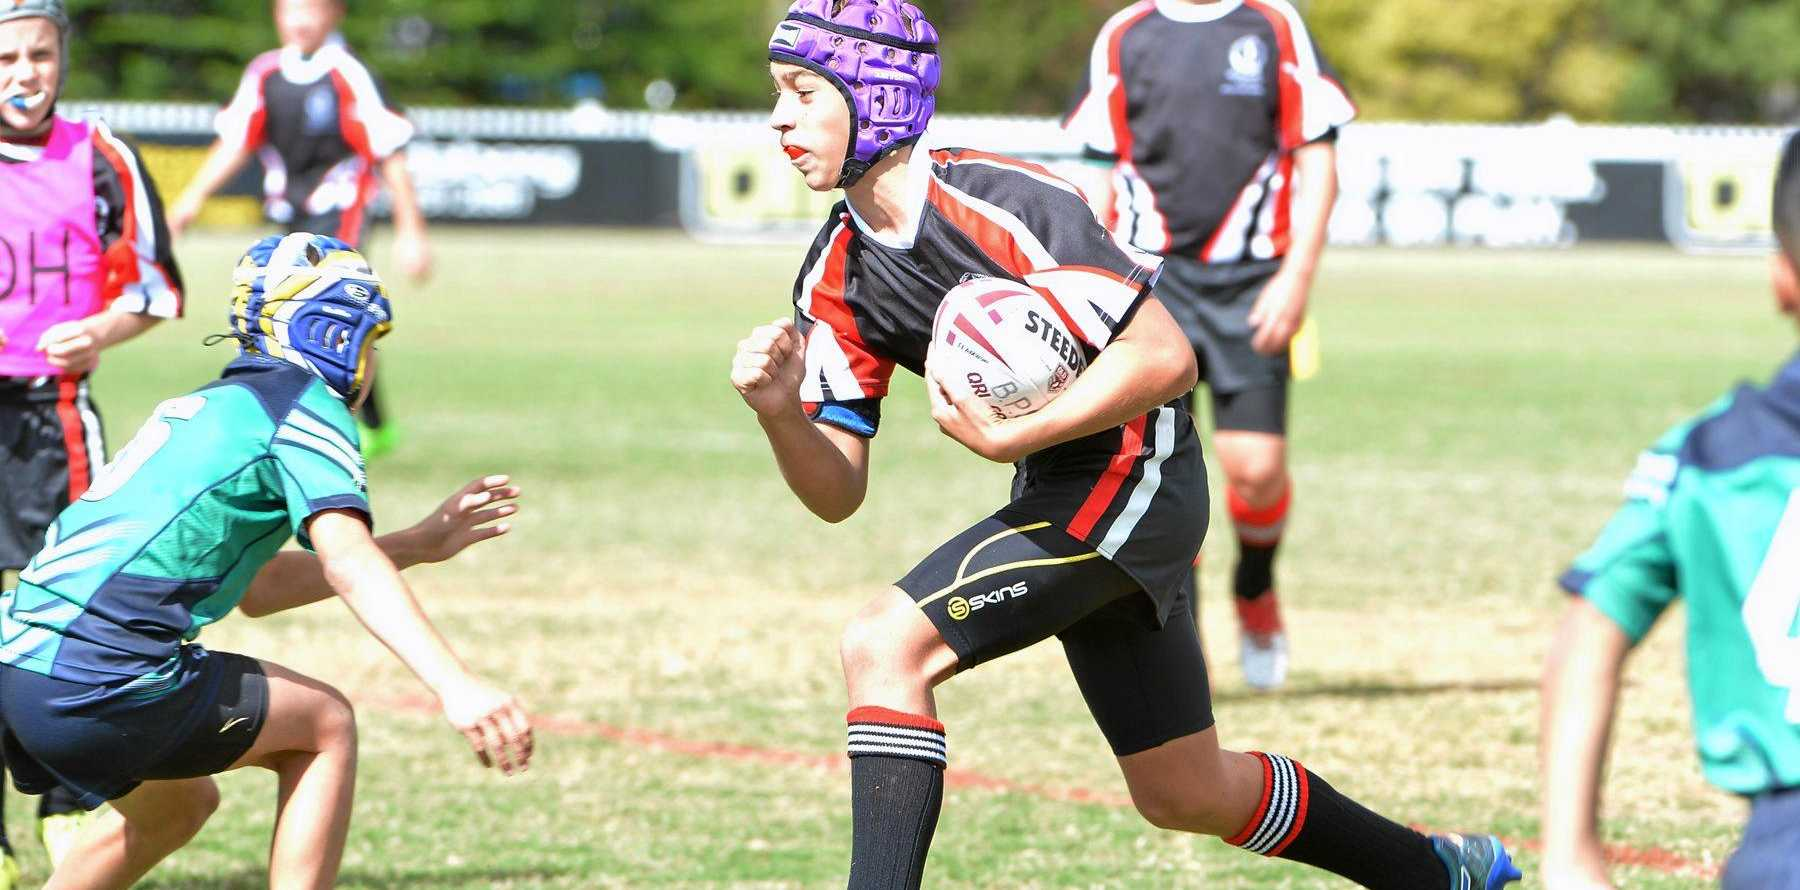 SCHOOL RUGBY: Tom Morcom plays in the Vic Jensen Cup and Salter Oval Bundaberg.